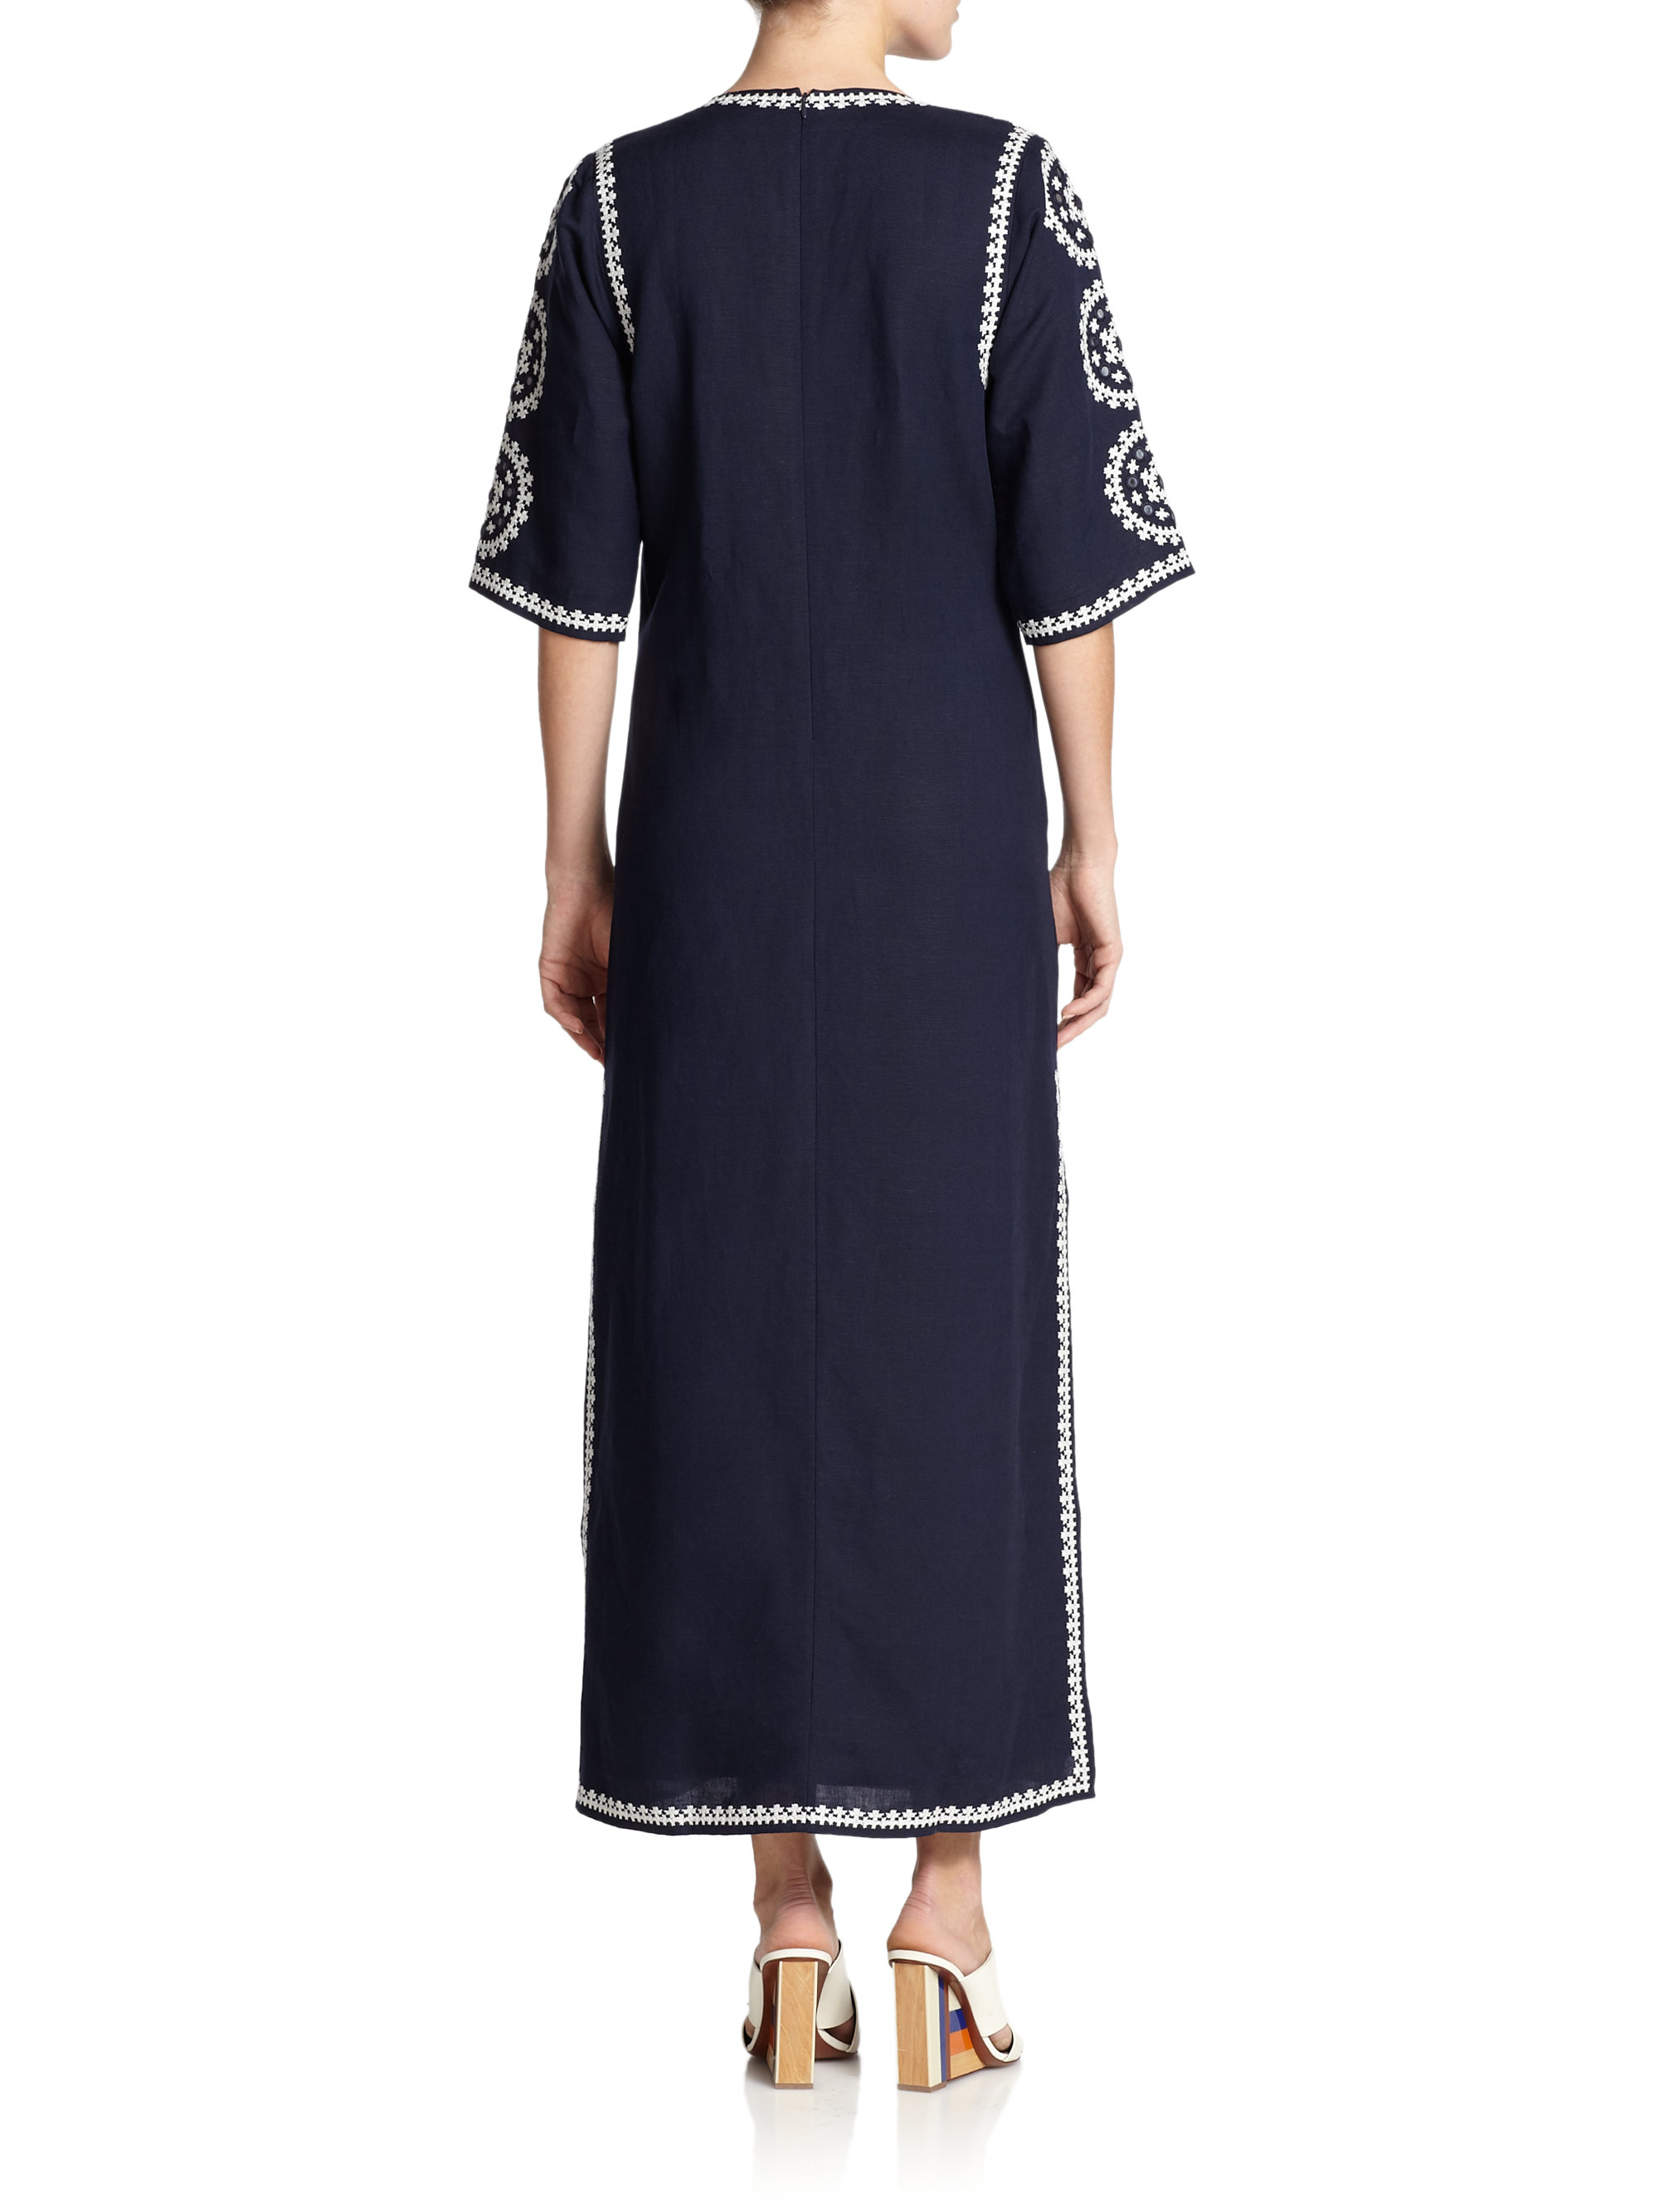 Lyst tory burch embroidered tunic dress in blue for Tory burch fashion island